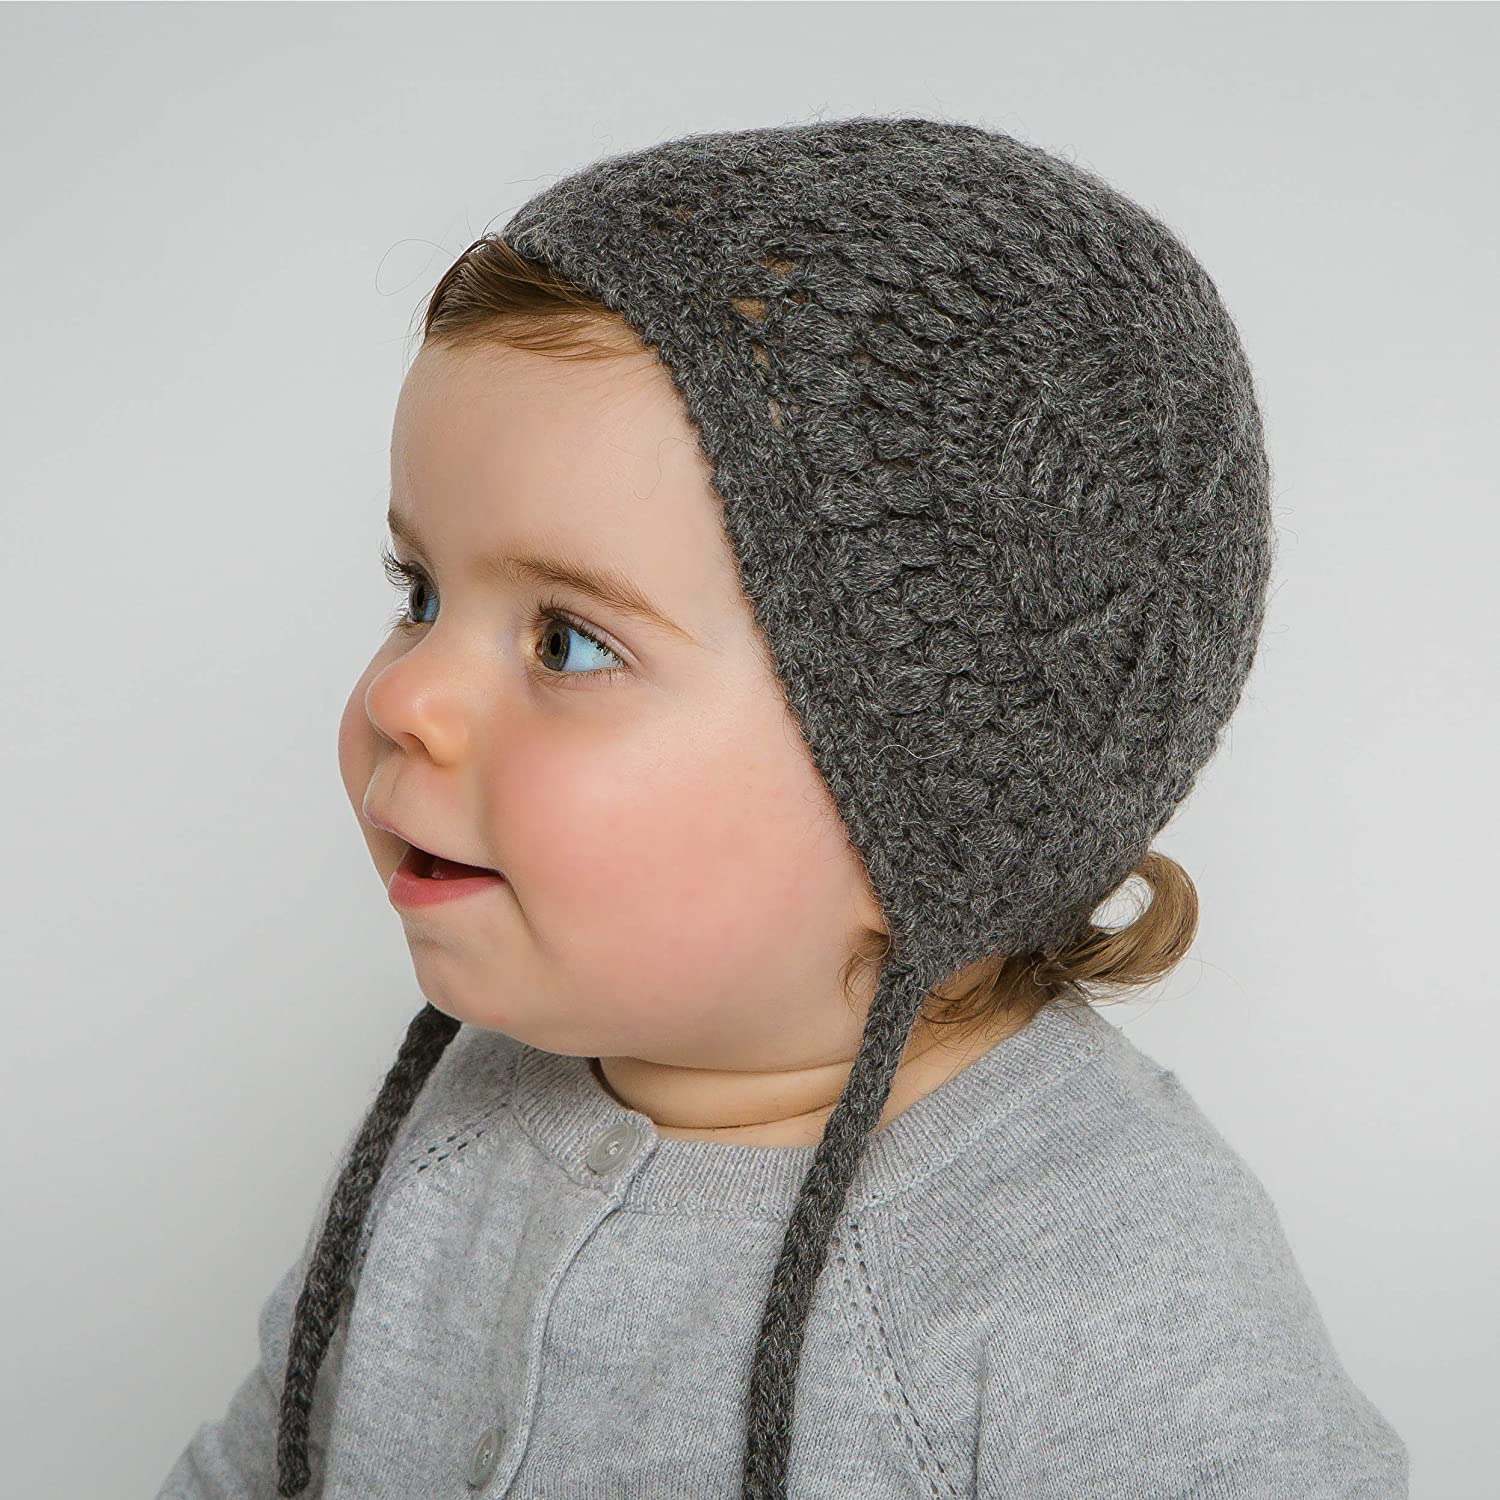 Hand-Knit 100% Organic Alpaca Wool | Loreto Bonnet Hat 2T-5T (Charcoal Grey) by Surhilo | Soft, Quality, Hypoallergenic | The Perfect & Eco-Friendly Way to Keep Your Baby & Toddler Cozy & Comfortable